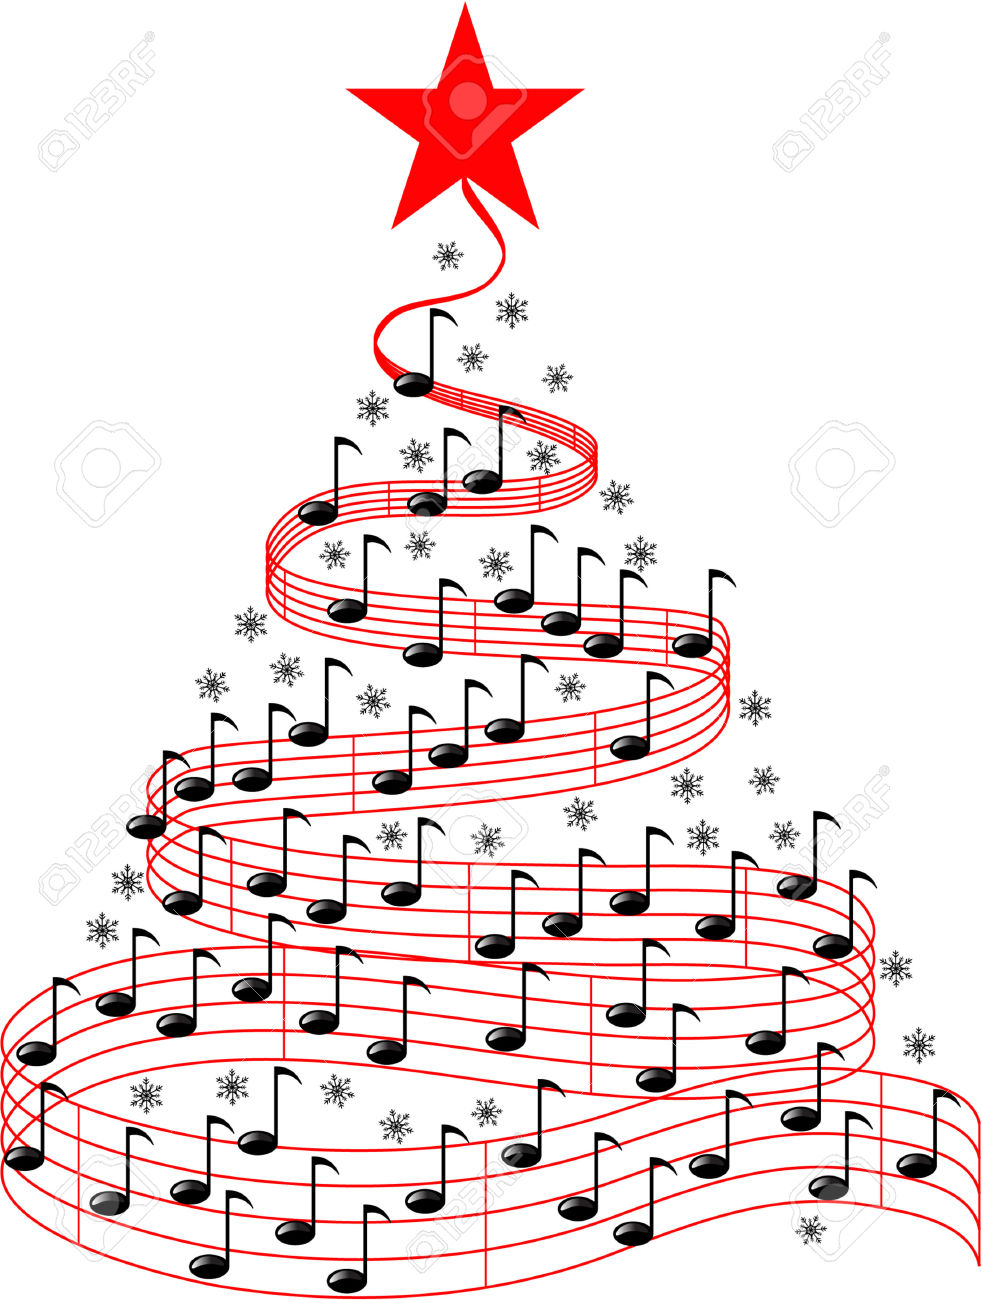 Christmas Music Notes Clipart ., Christmas Music Free Clipart.